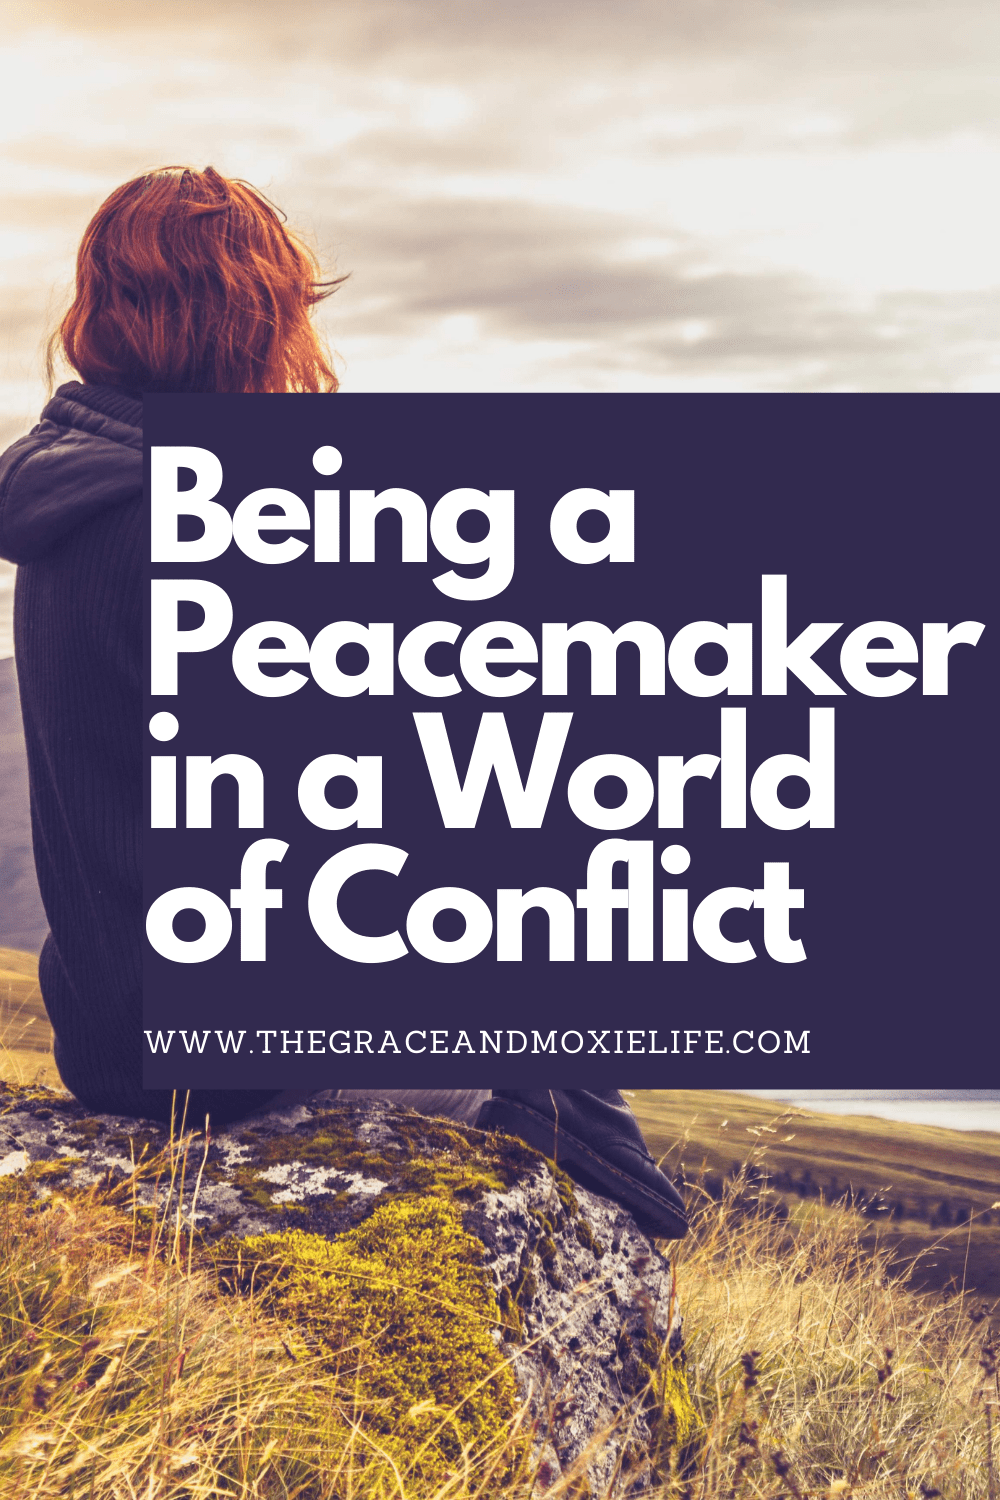 Being a Peacemaker in a World of Conflict | The Grace and Moxie Life